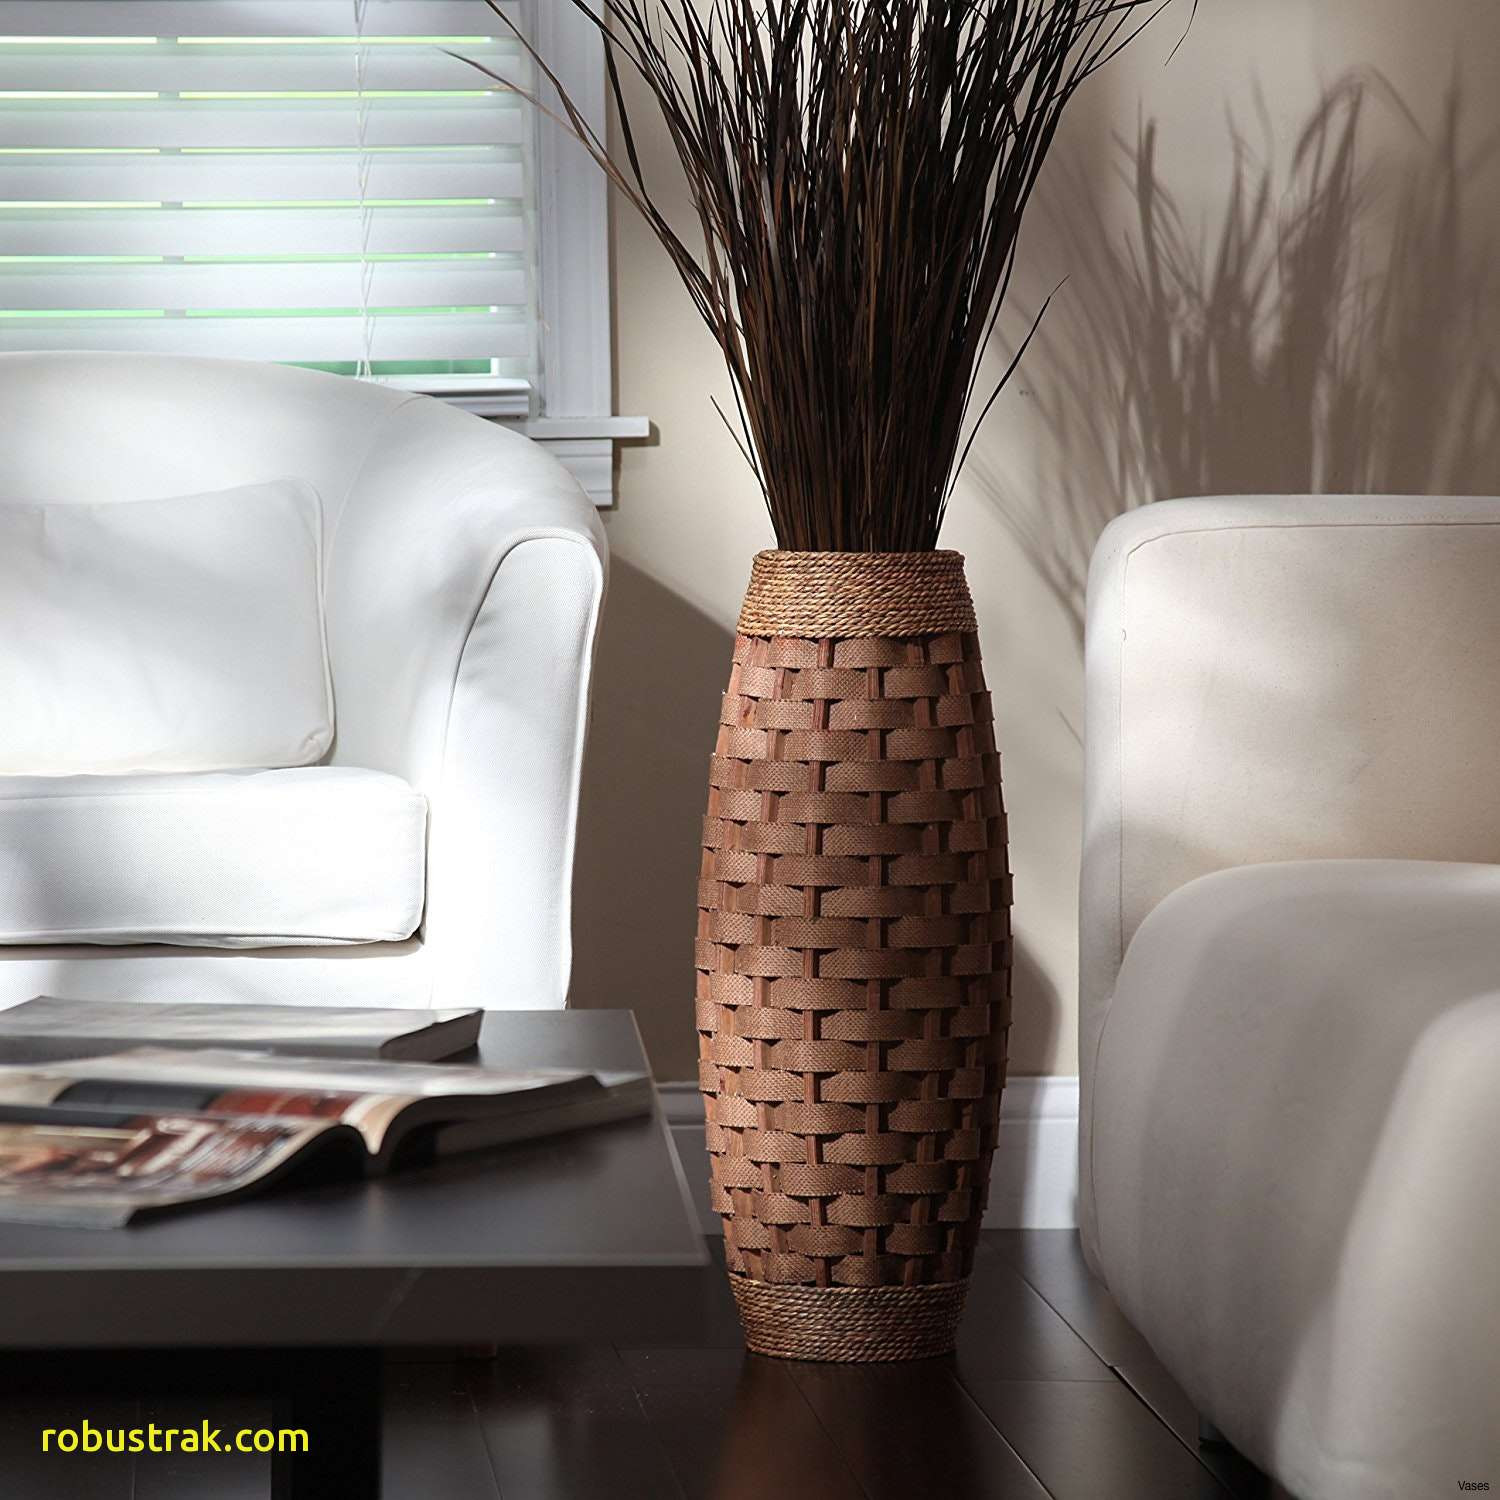 cheap home decor vases of decorative vases for living room inspirational 24 floor vases ideas regarding decorative vases for living room inspirational 24 floor vases ideas for stylish home d